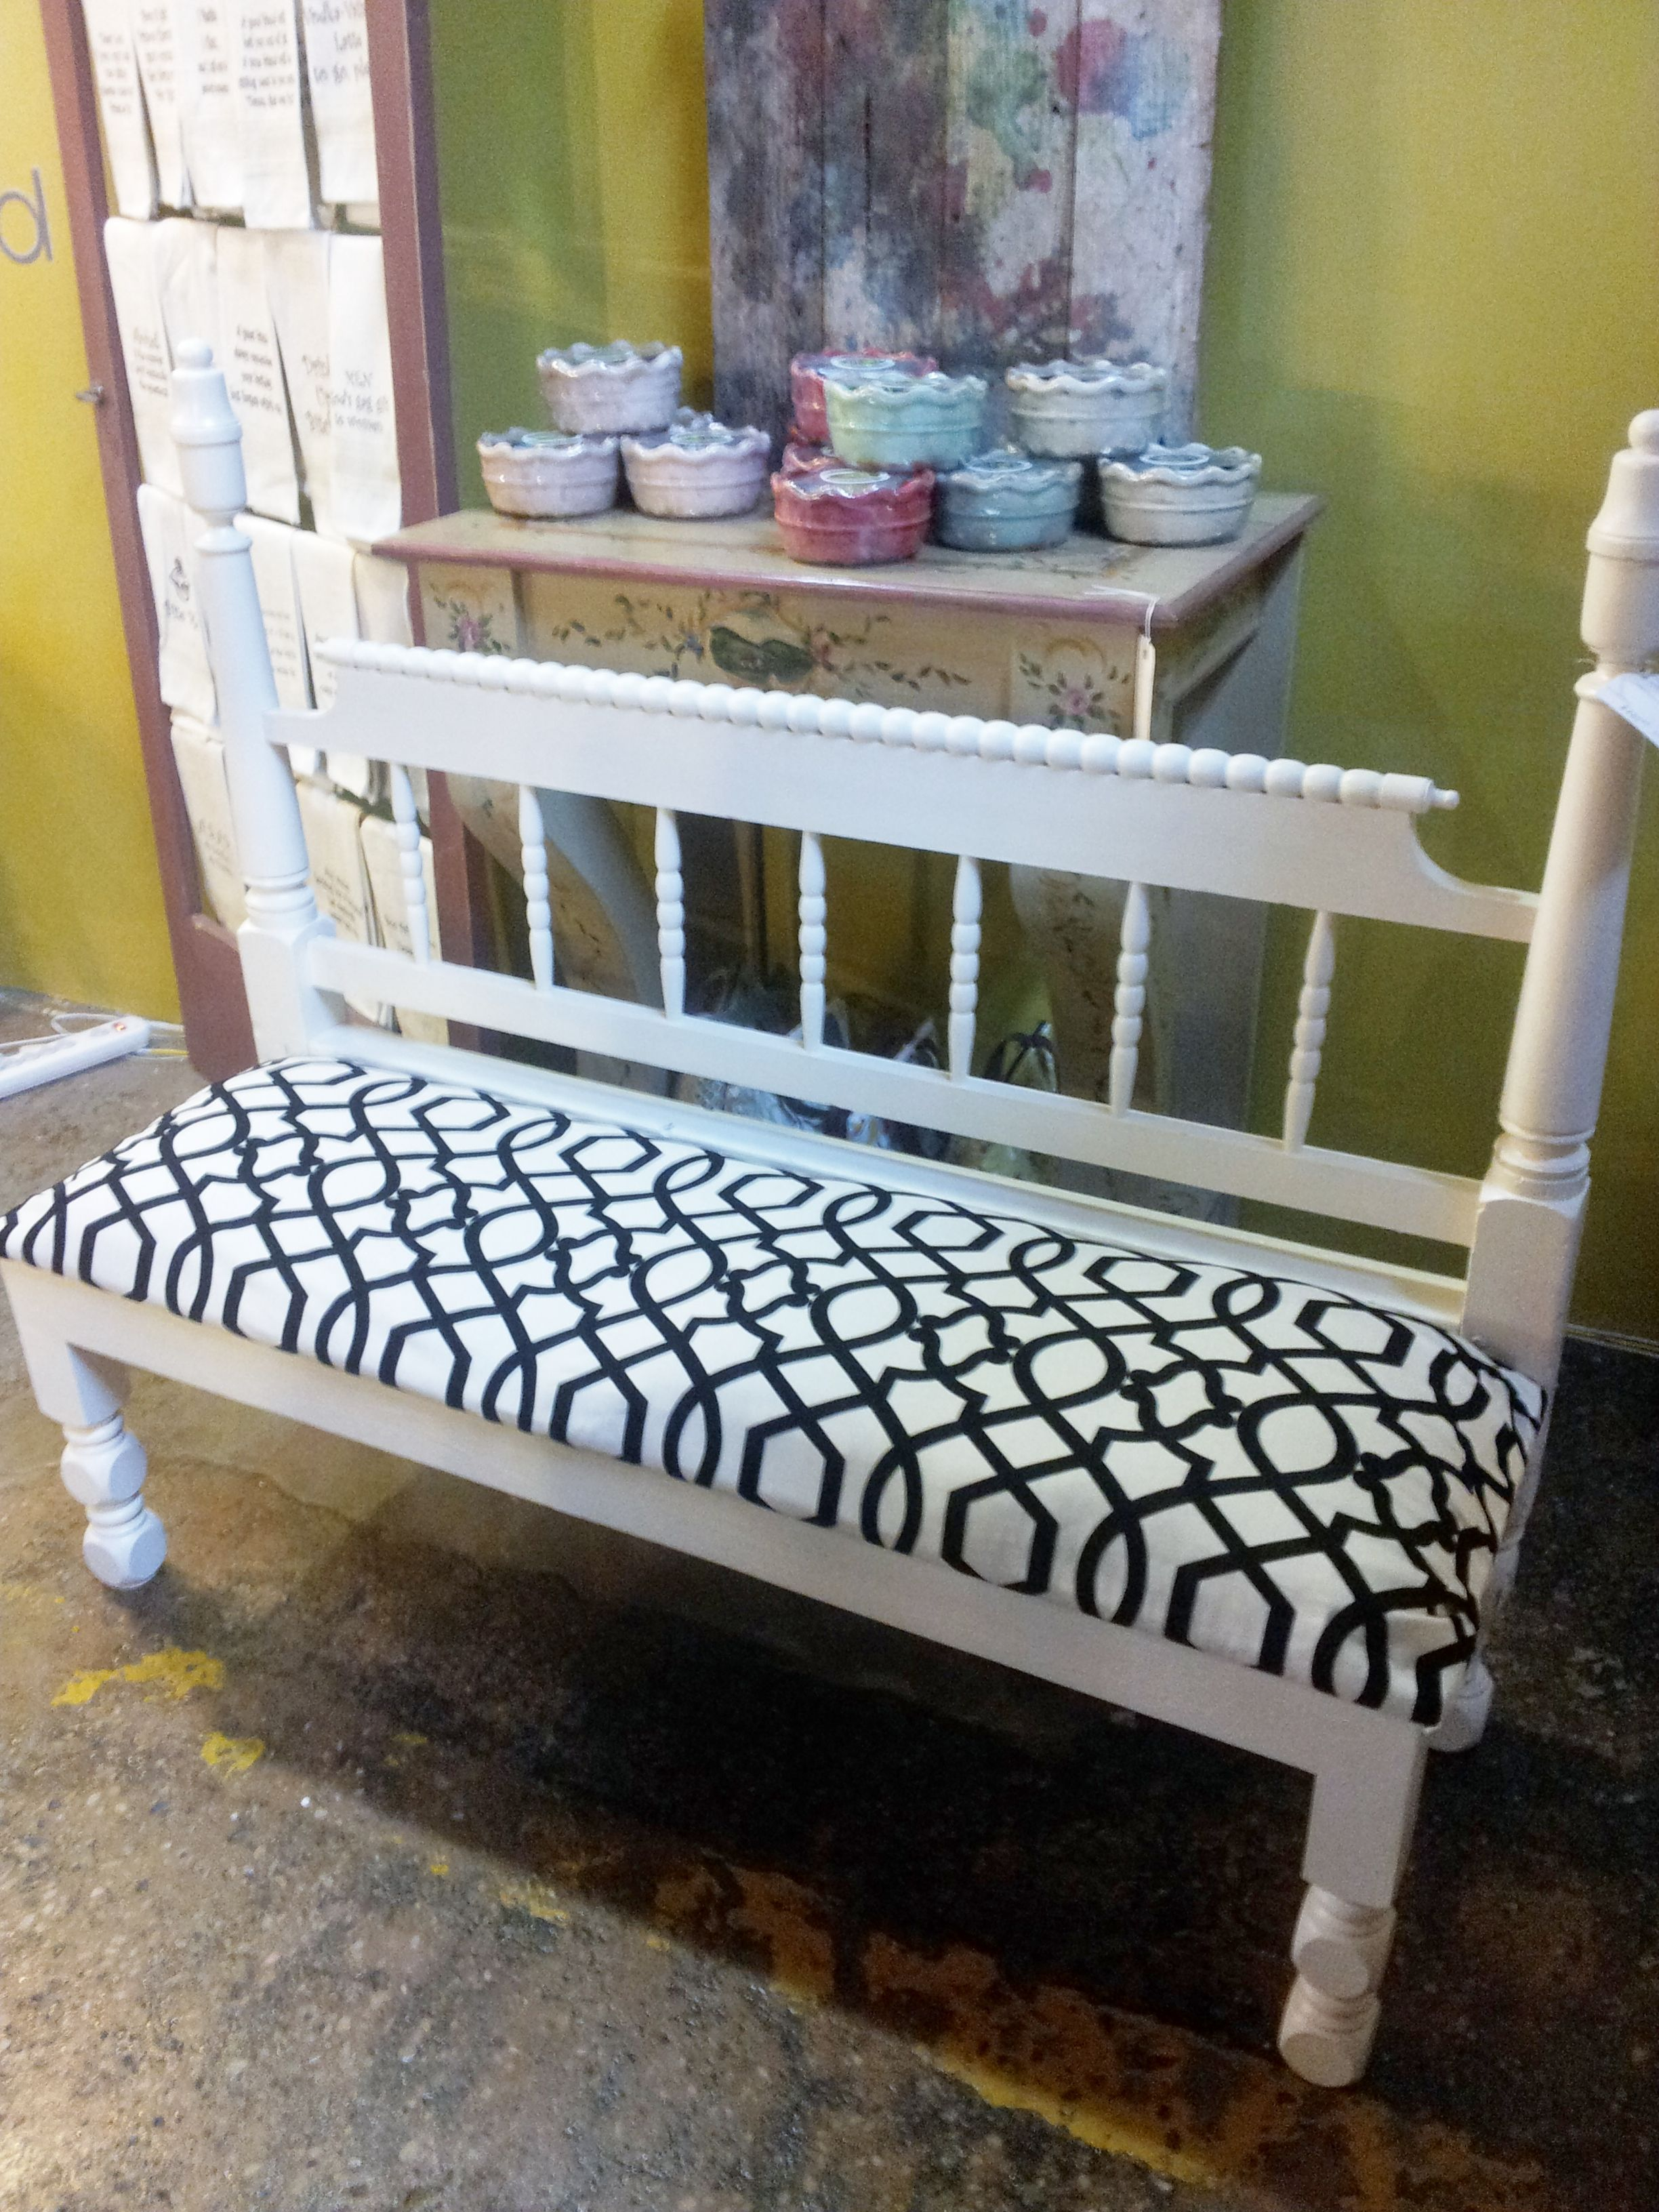 Upcycled bed rail cushioned bench 1920s home decor